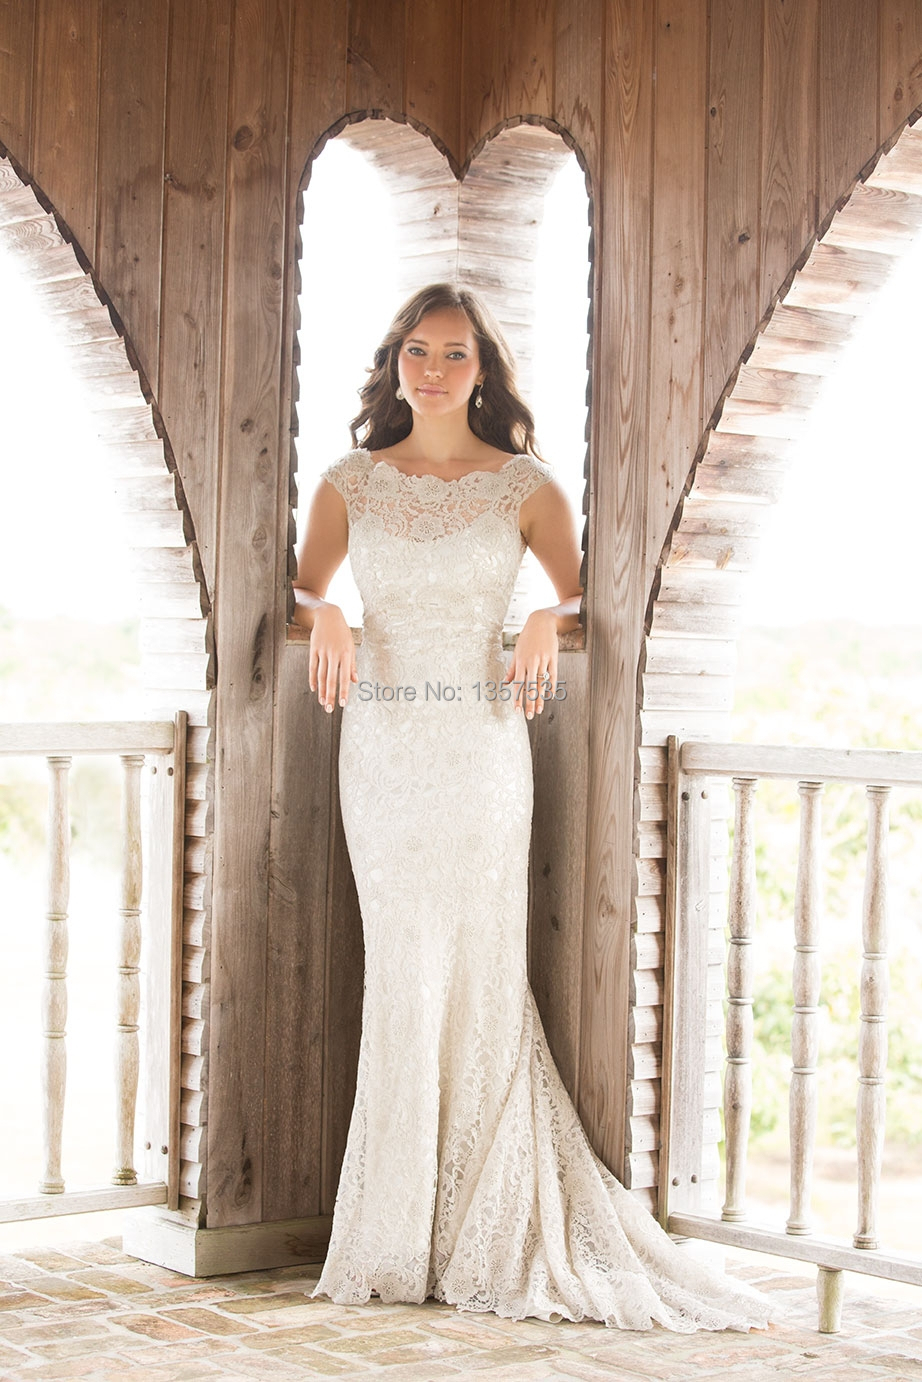 mexican style wedding dresses mexican wedding dress Mexican Style Wedding Dresses